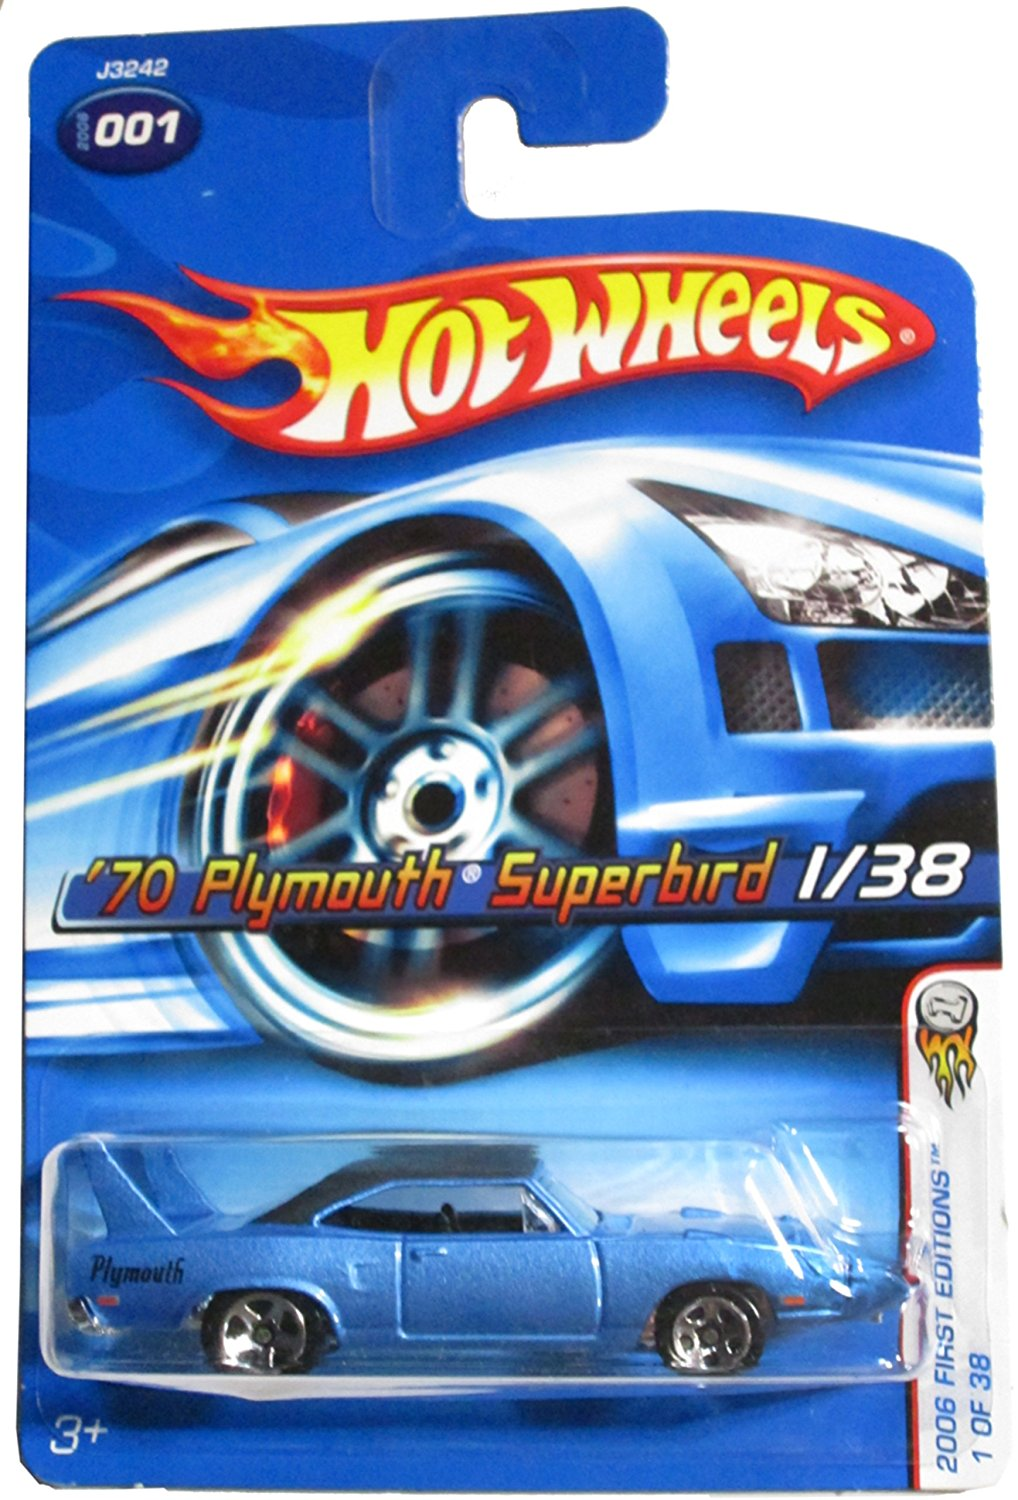 Cheap 1970 Plymouth Superbird For Sale Find Fog Lights Wiring Diagram Get Quotations Mattel Hot Wheels 2006 164 Scale Blue Die Cast Car